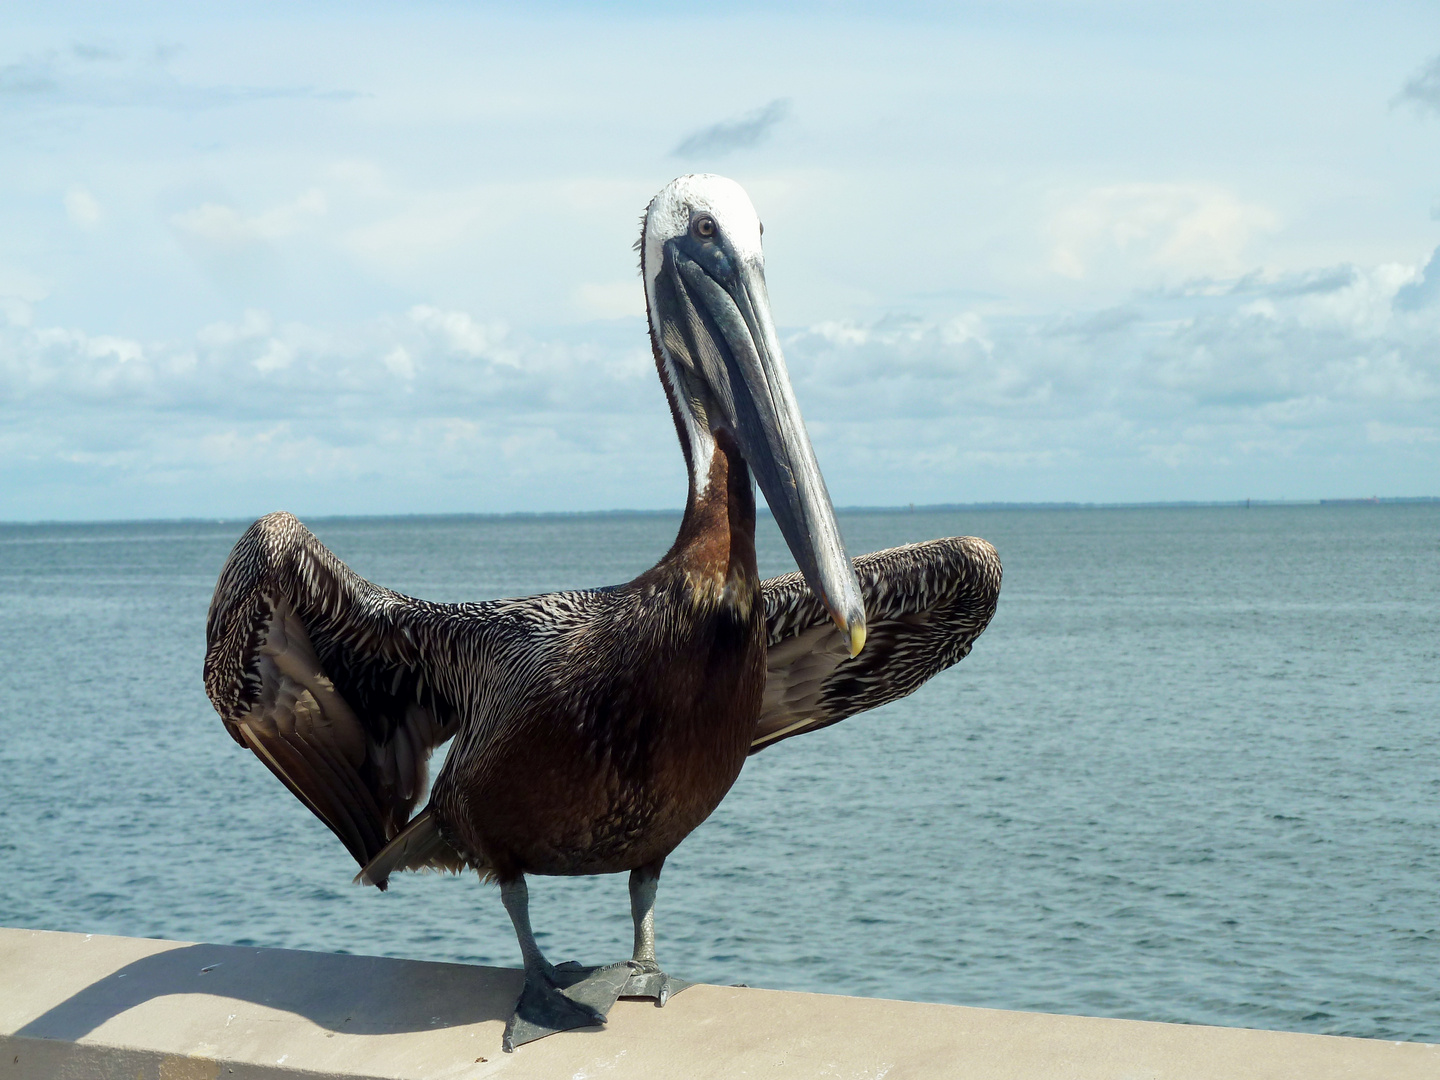 My Name Is Pelican